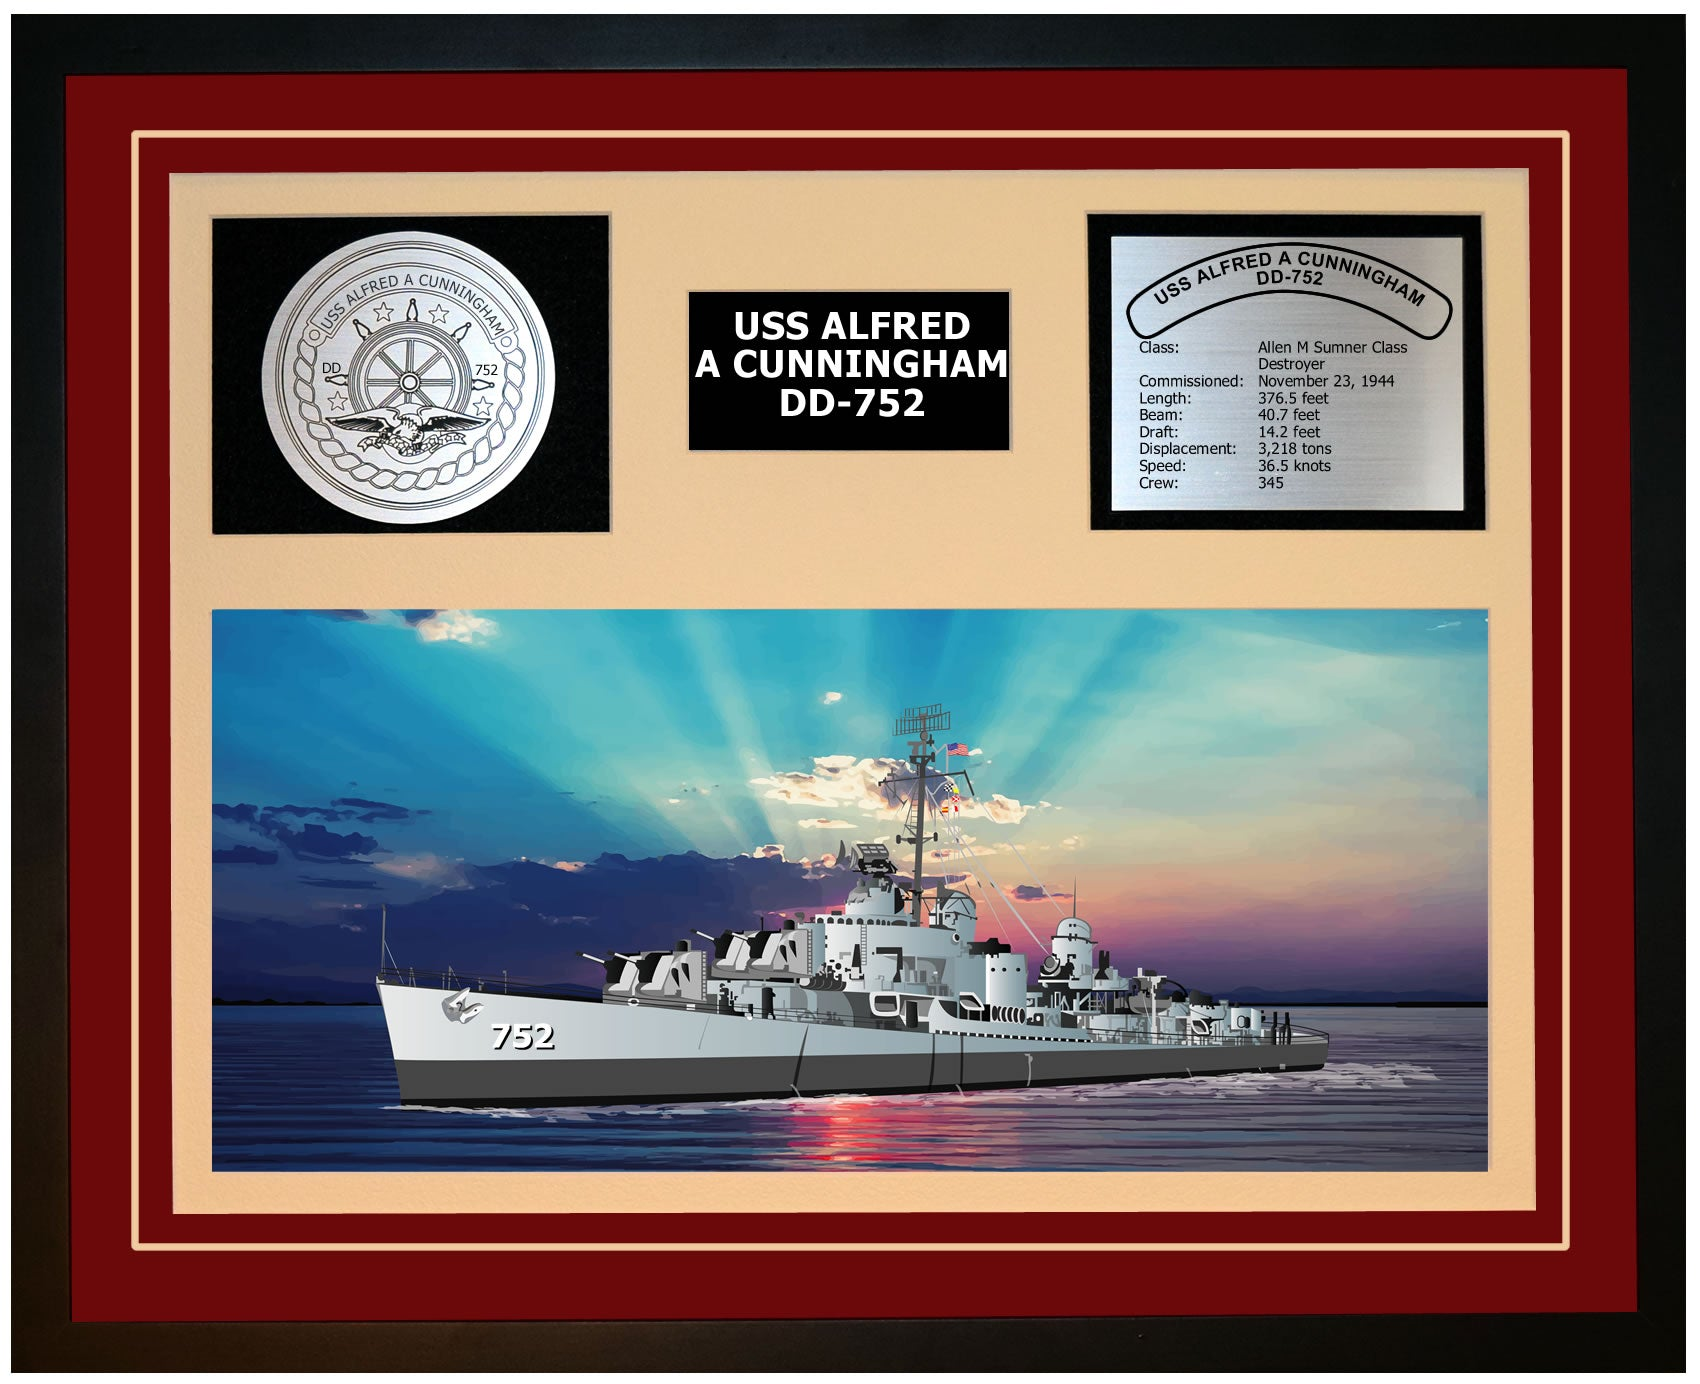 USS ALFRED A CUNNINGHAM DD-752 Framed Navy Ship Display Burgundy